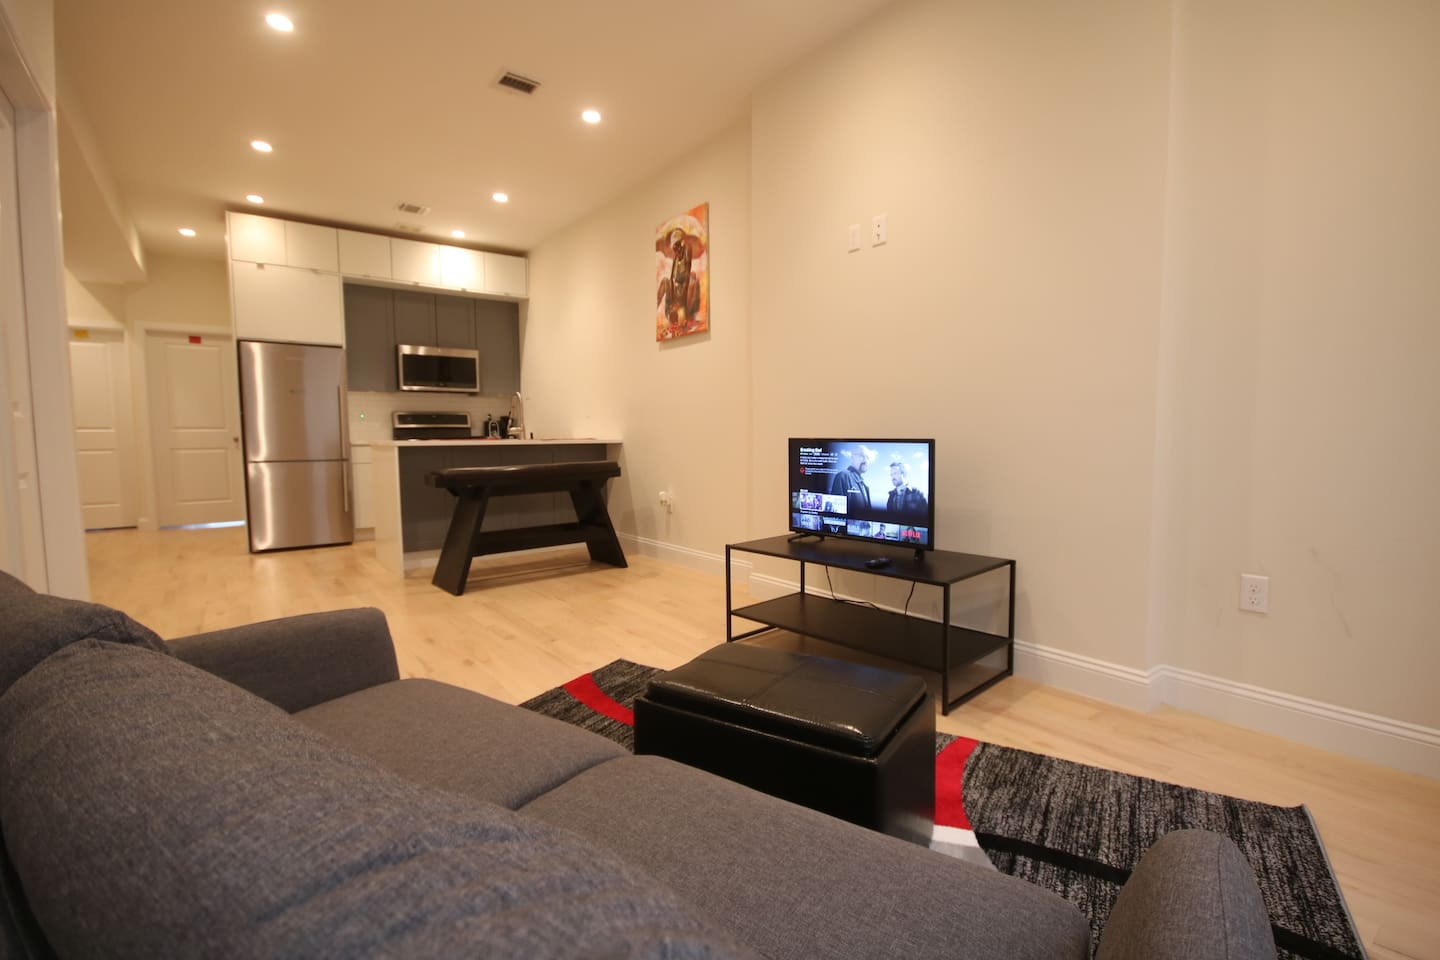 Beautiful and modern living room area with free Netflix movies and shows. Open space kitchen with stainless steel appliances. Coffee maker and toaster included.